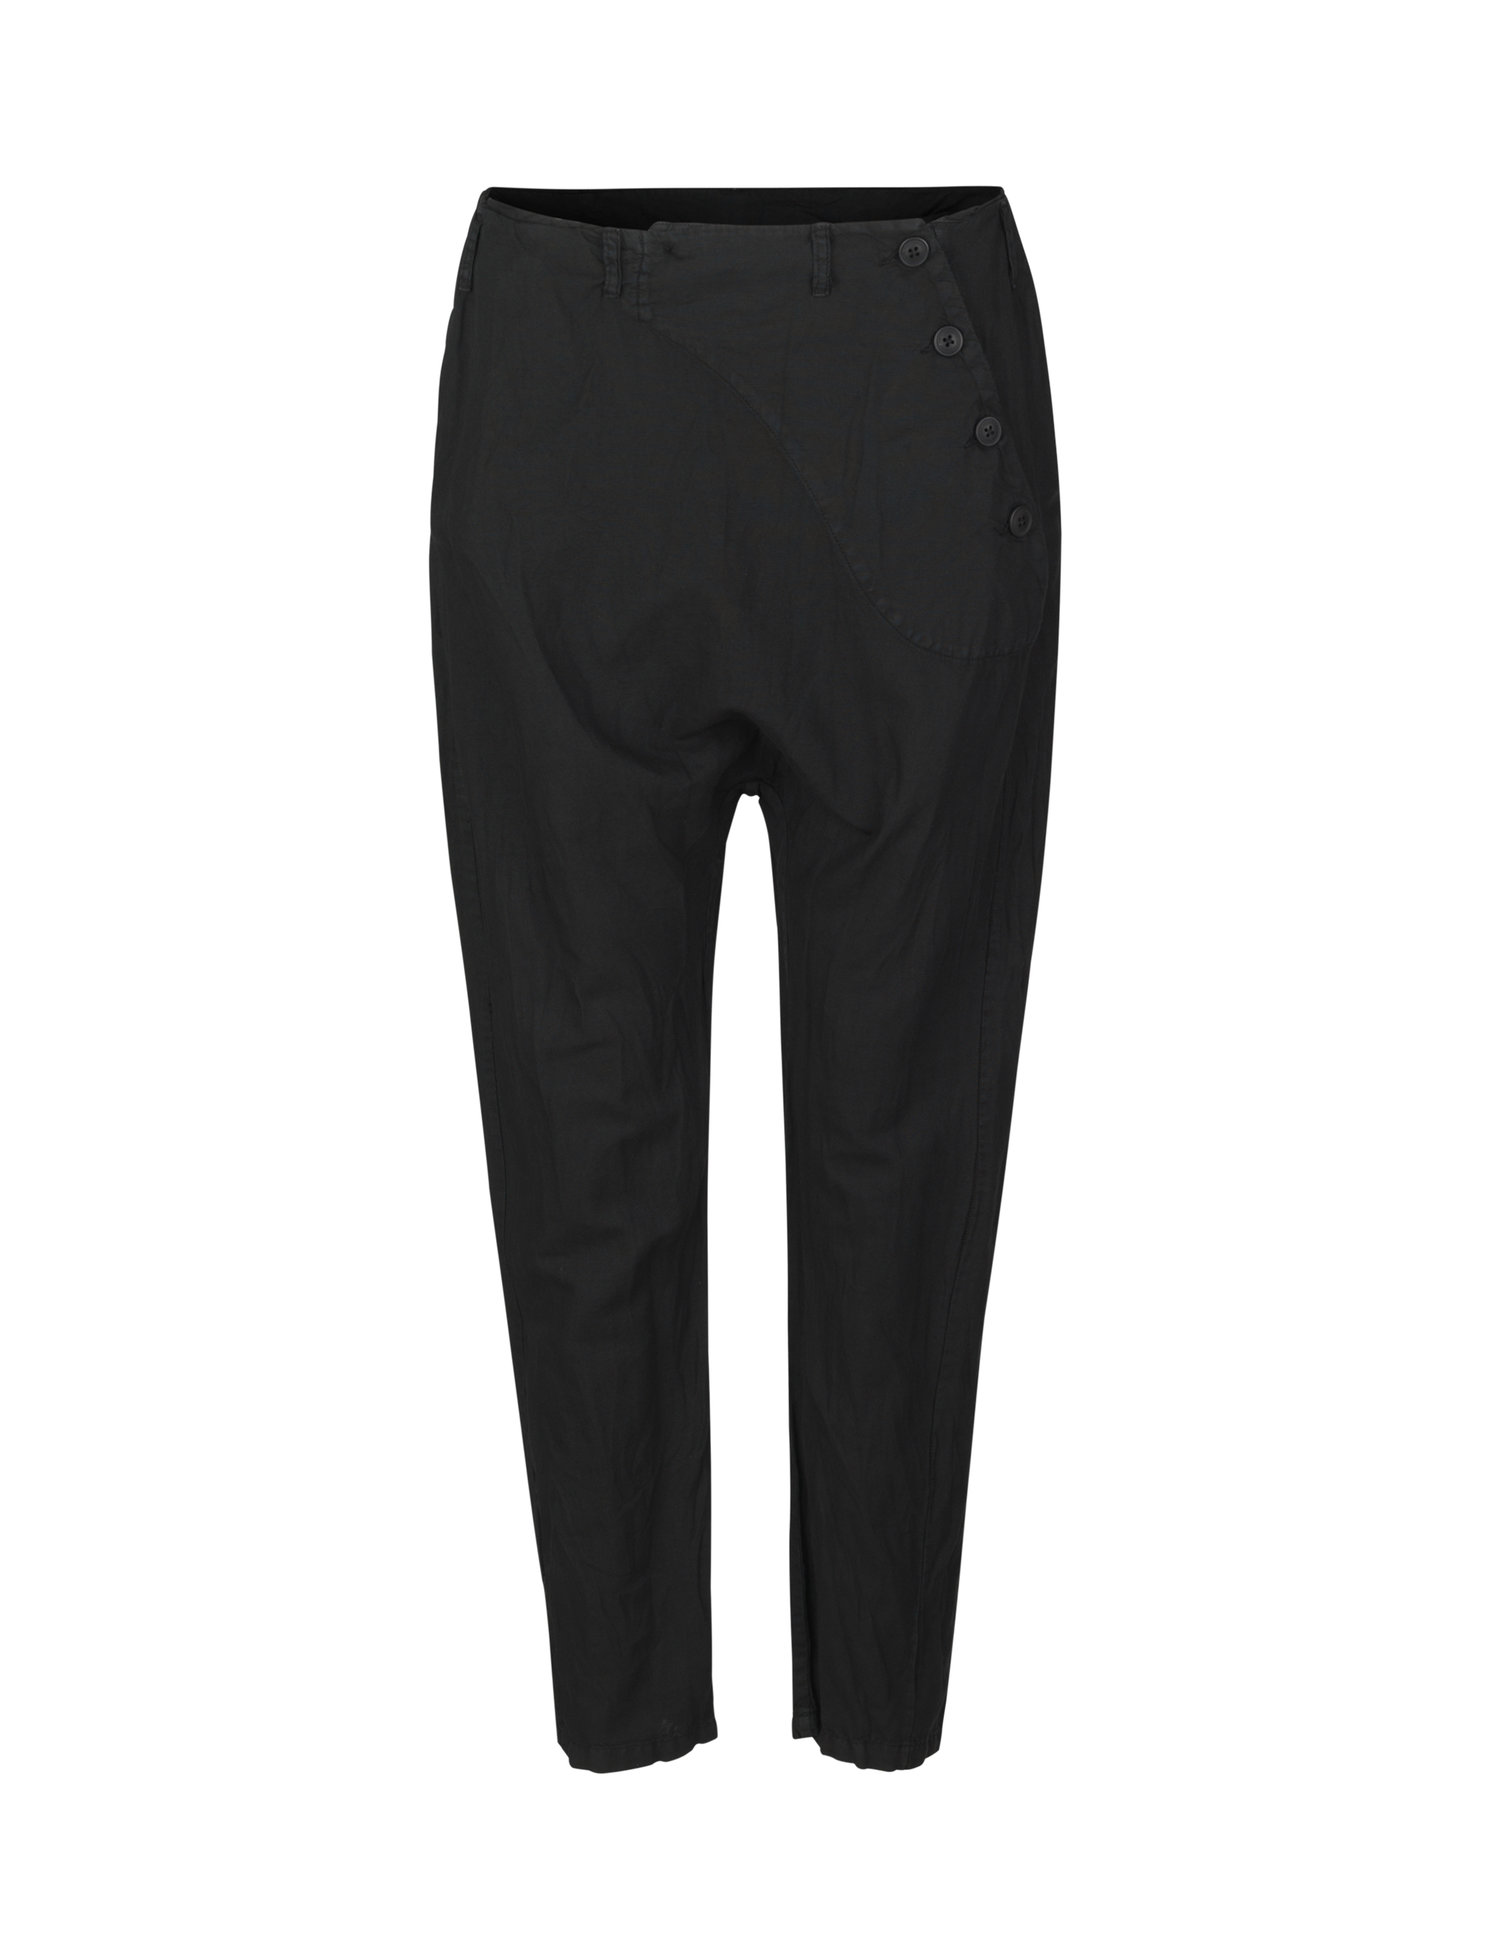 ABELUS PANT — FIRST AID TO THE INJURED